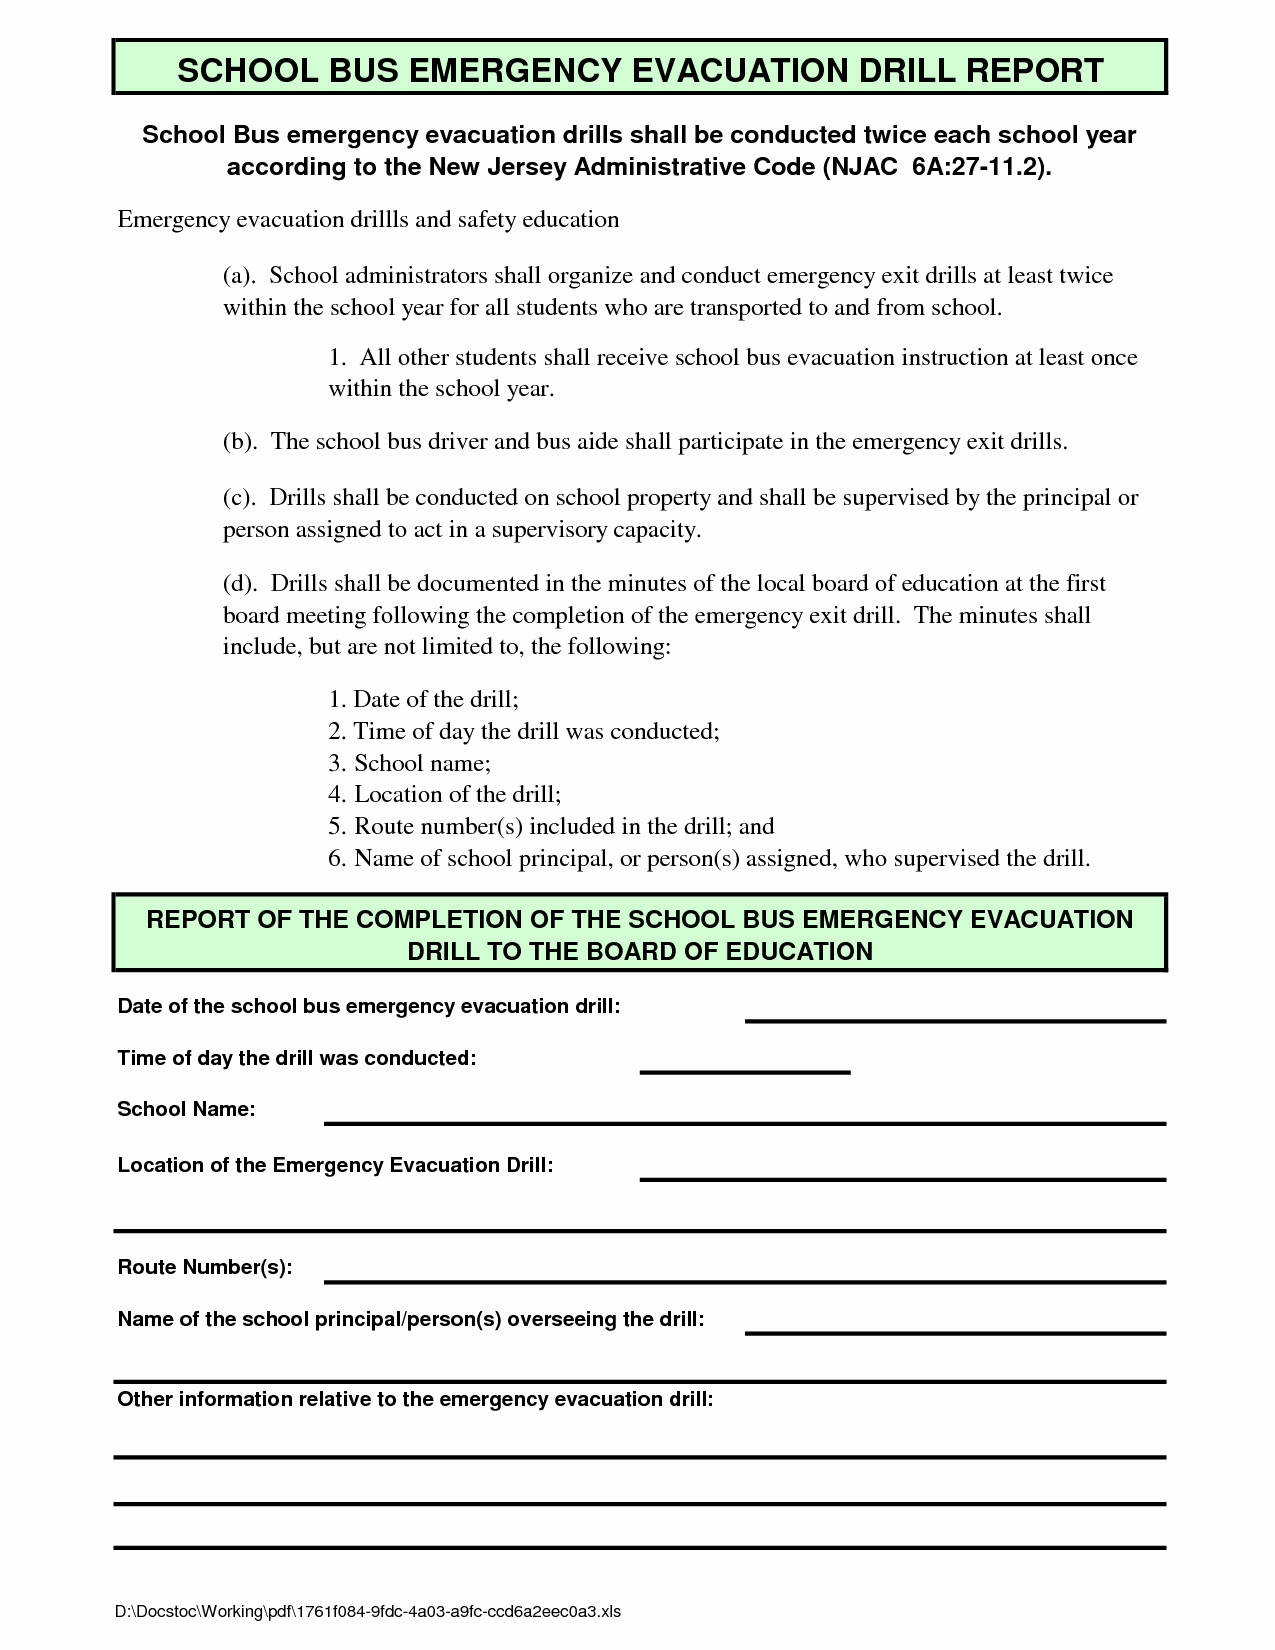 Fire Drill Report Template Beautiful Best S Of Emergency Evacuation Drill Report Sample